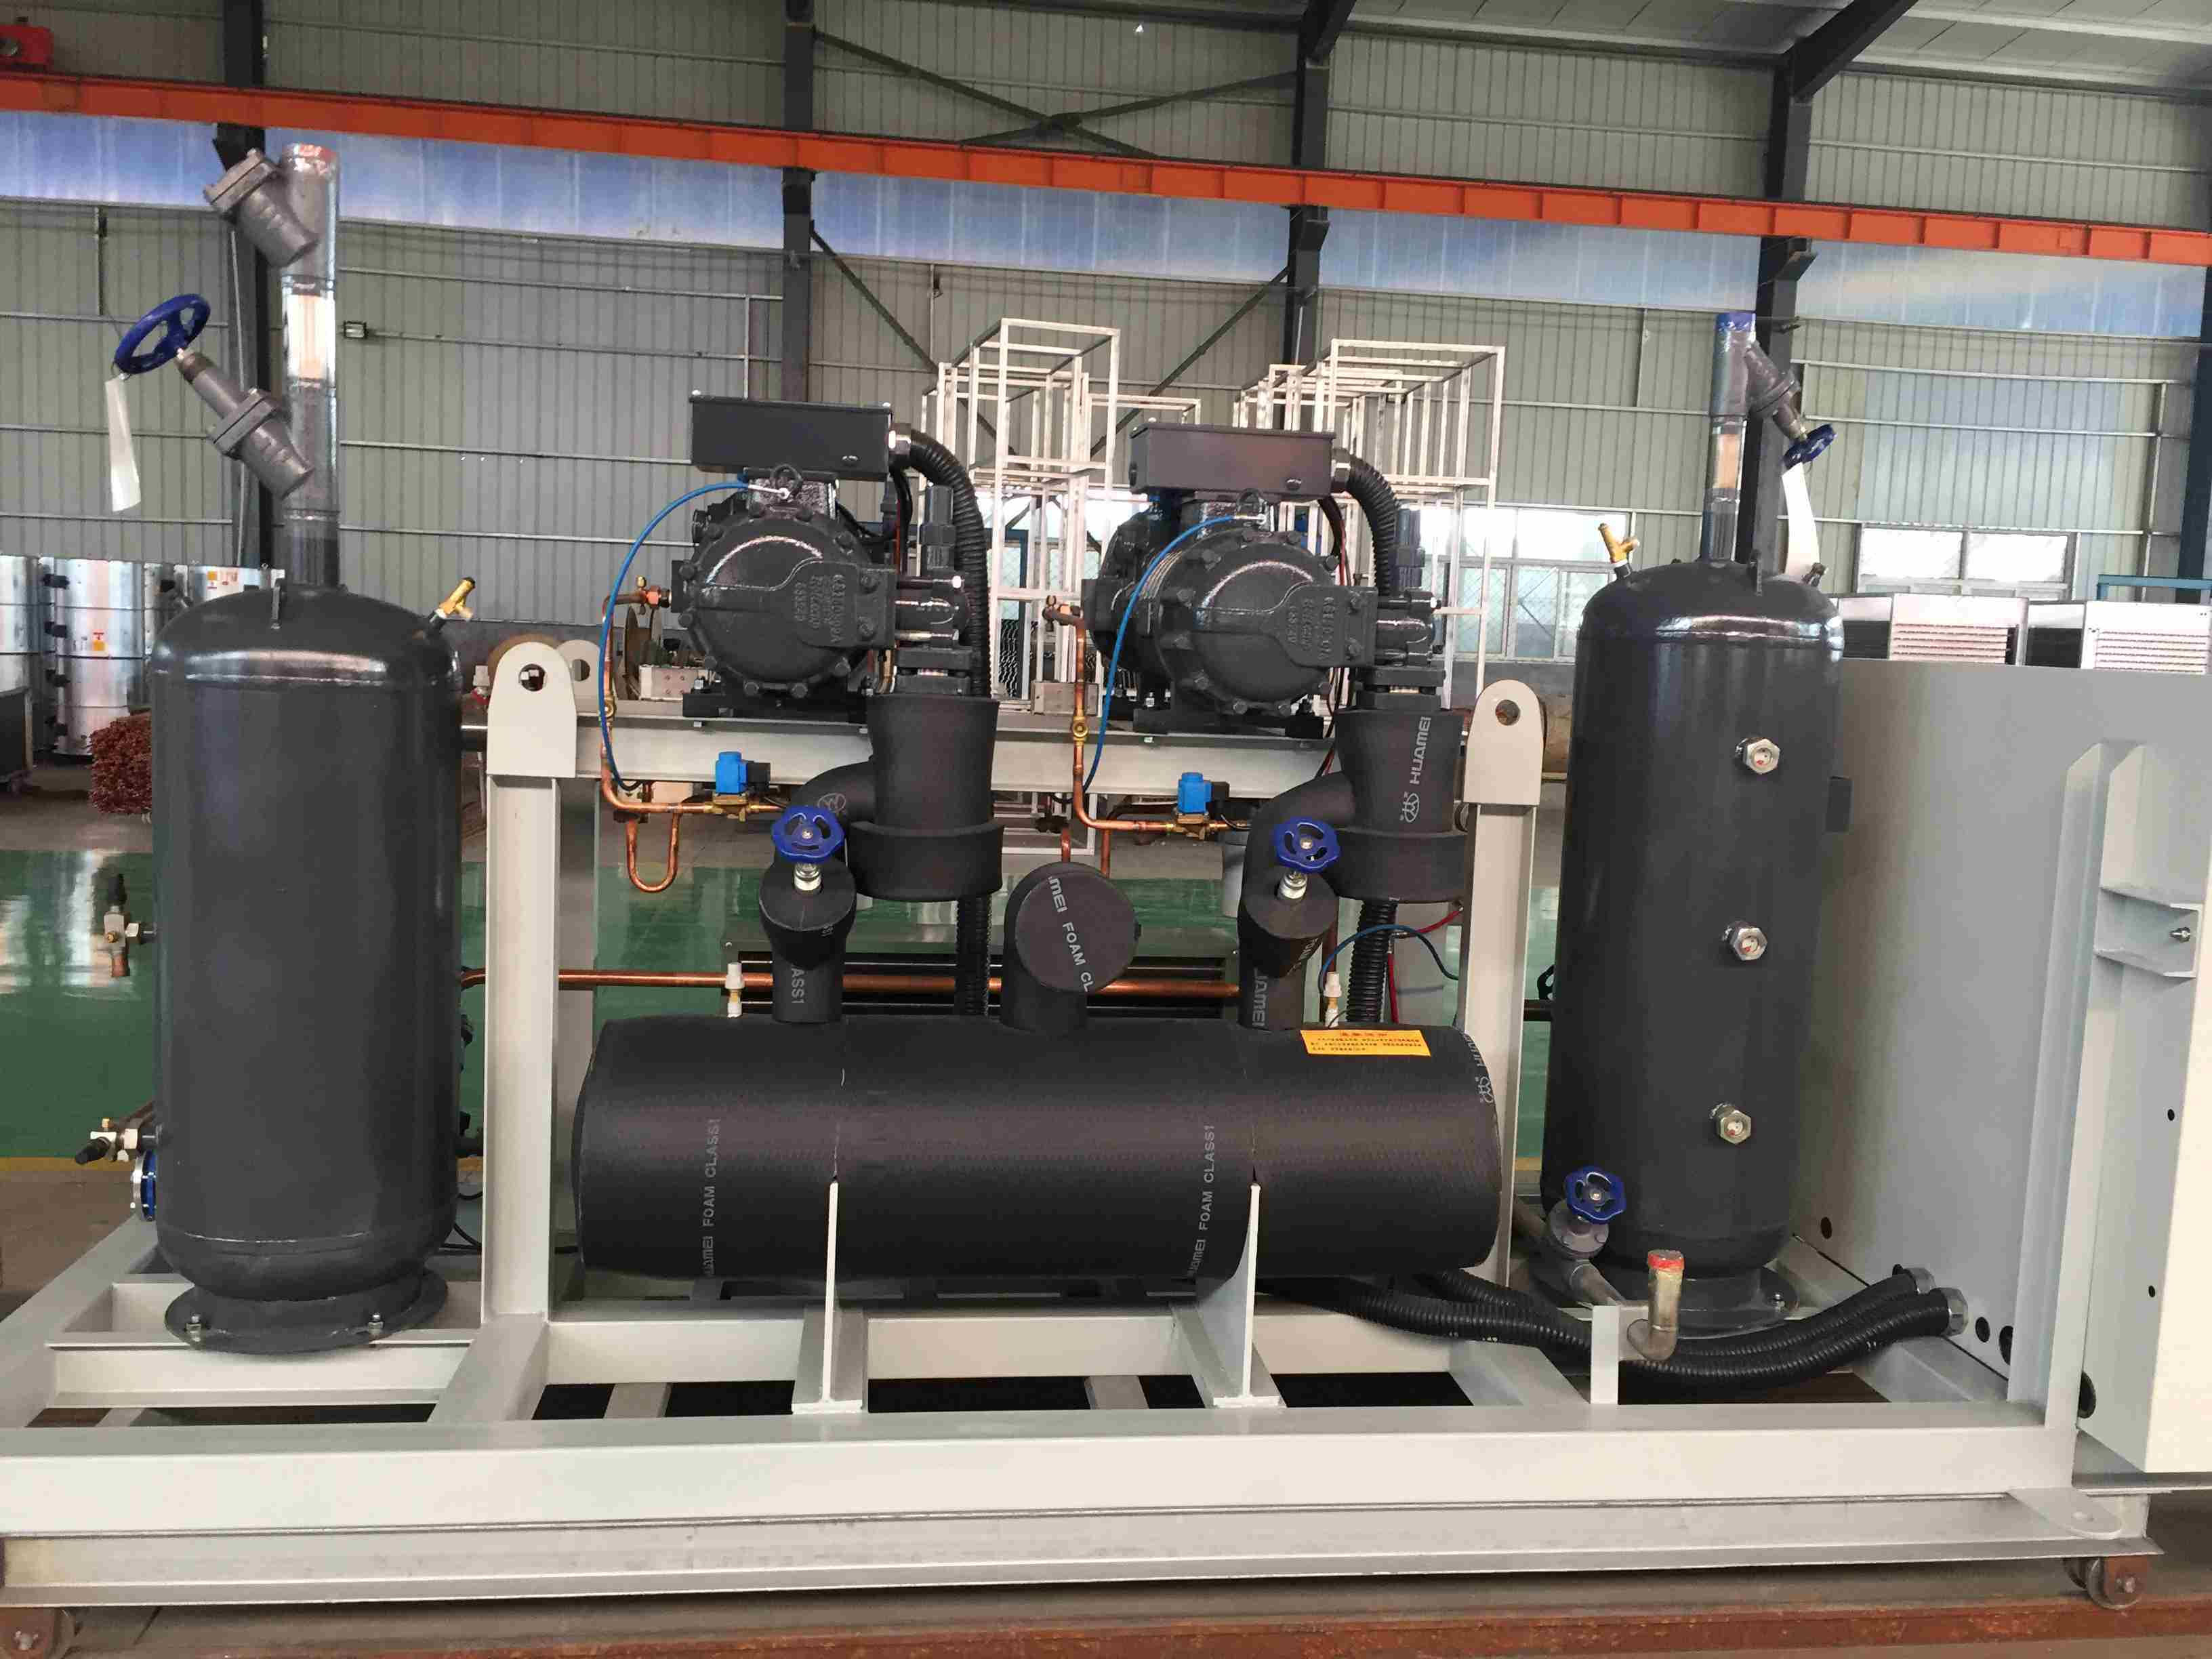 Refcomp Low Temperature Parallel Screw Unit Refrigeration Compressor